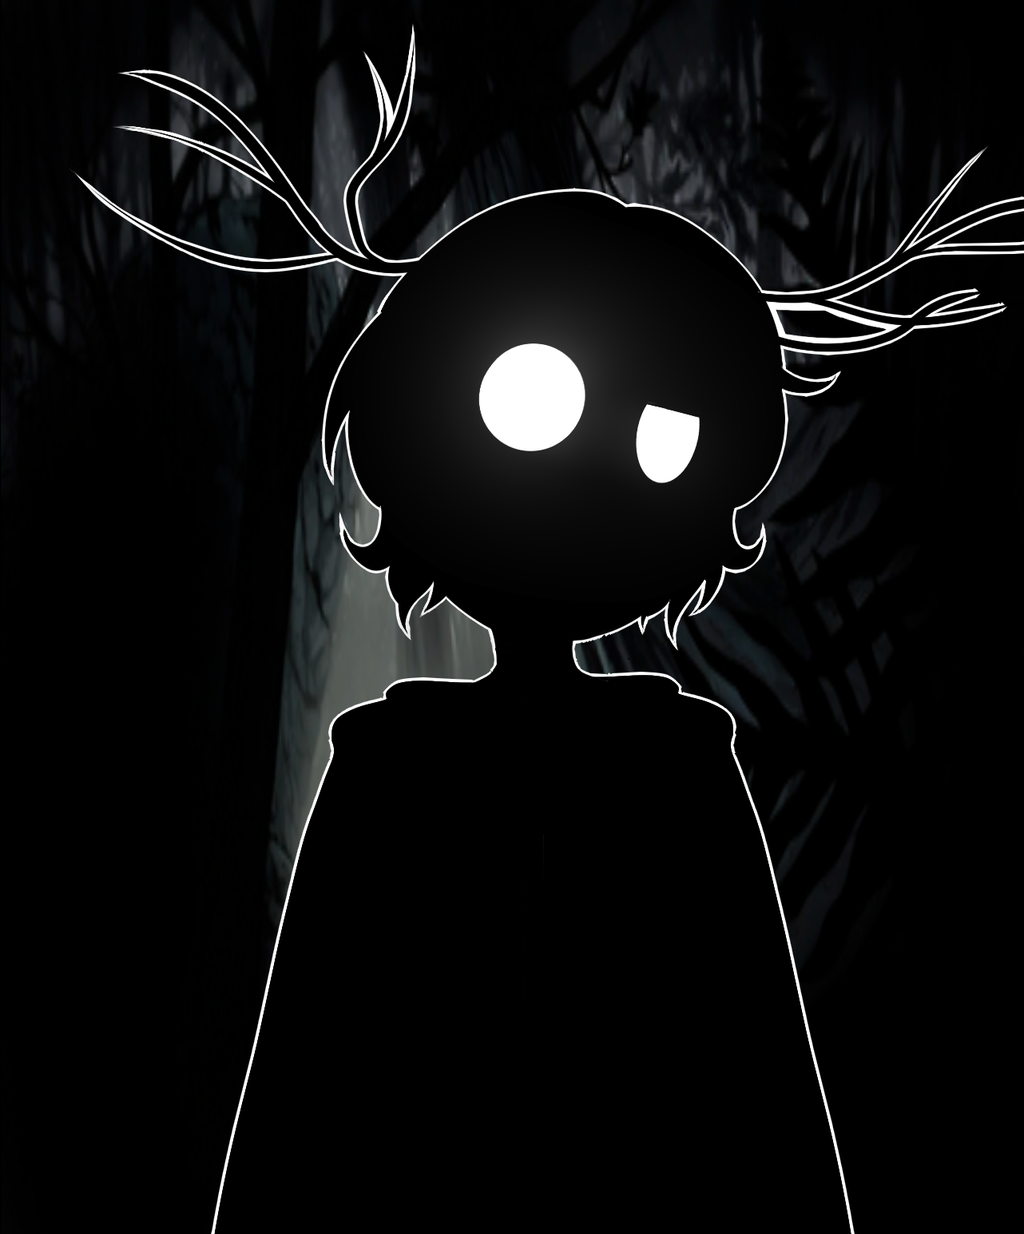 Human The Beast Over The Garden Wall 2 By Chibi Dark Kitsune On Deviantart